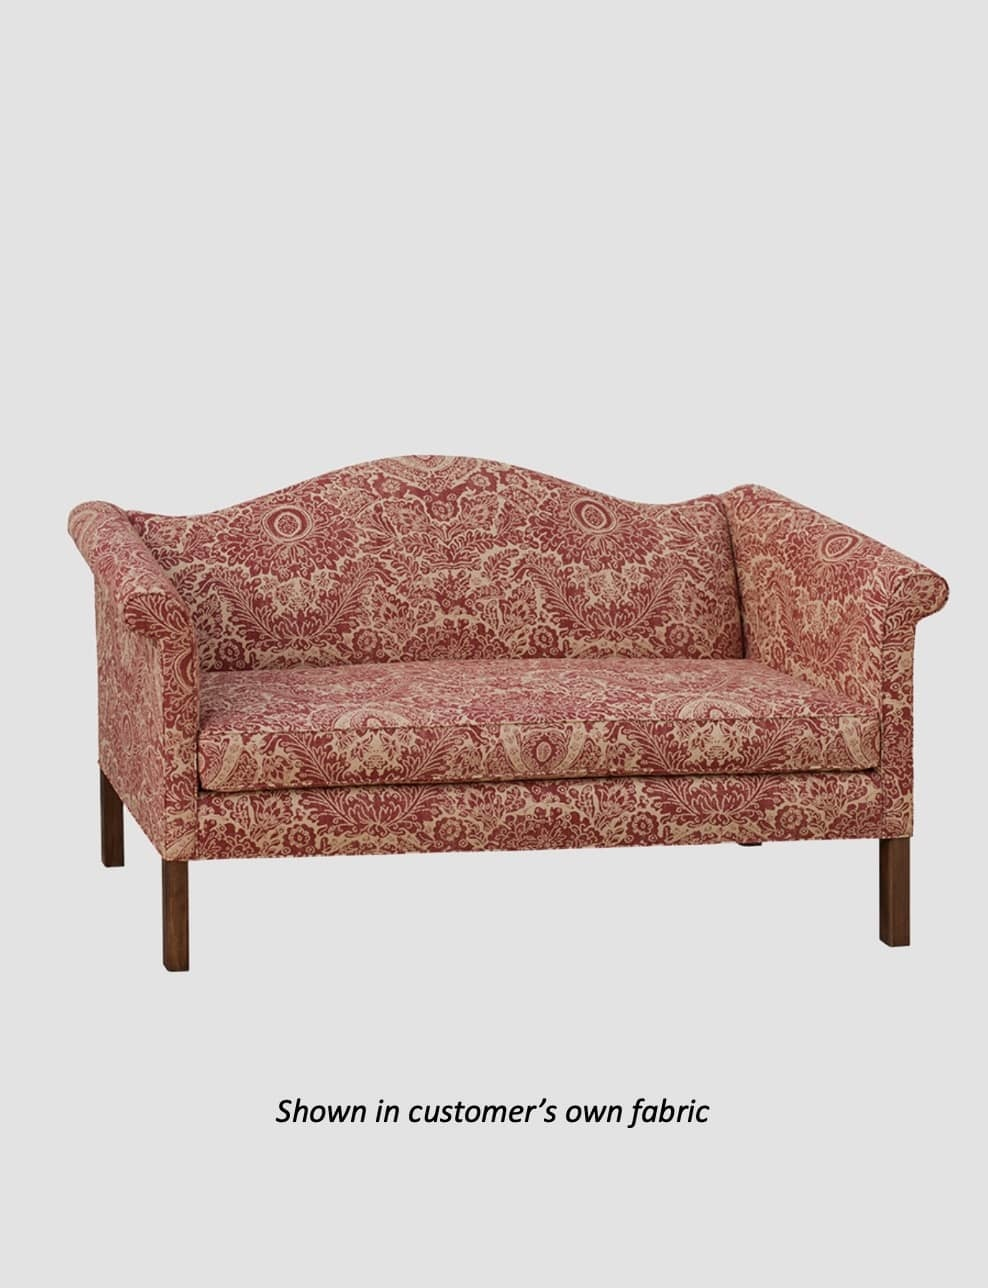 Town & Country Furnishings Chippendale Sofa from the American Primitive Collection